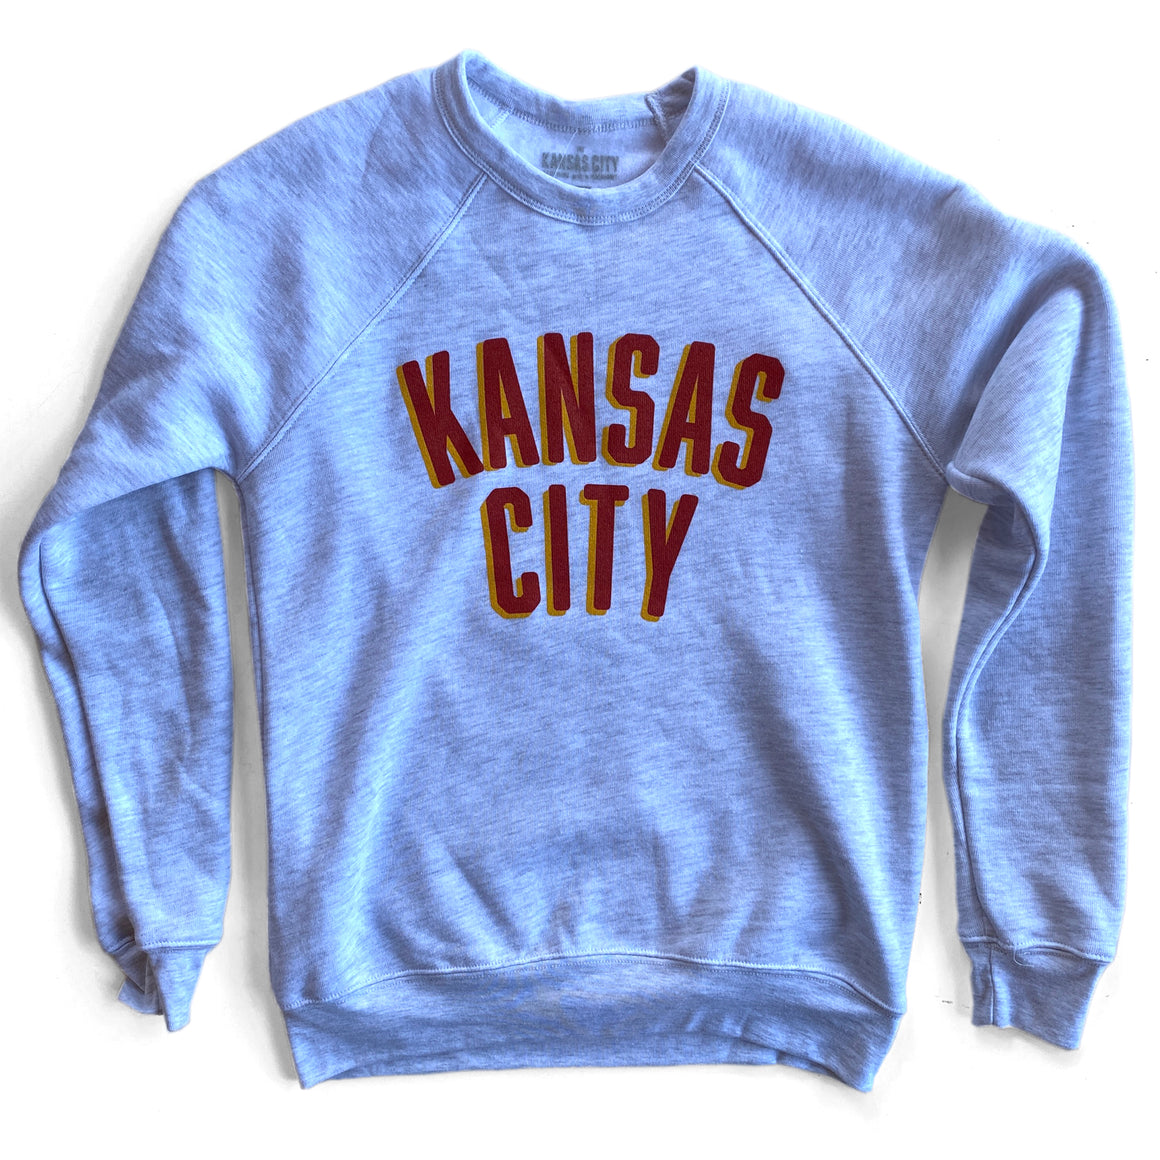 KC CLOTHING | KANSAS CITY RED & YELLOW SWEATSHIRT - ASH